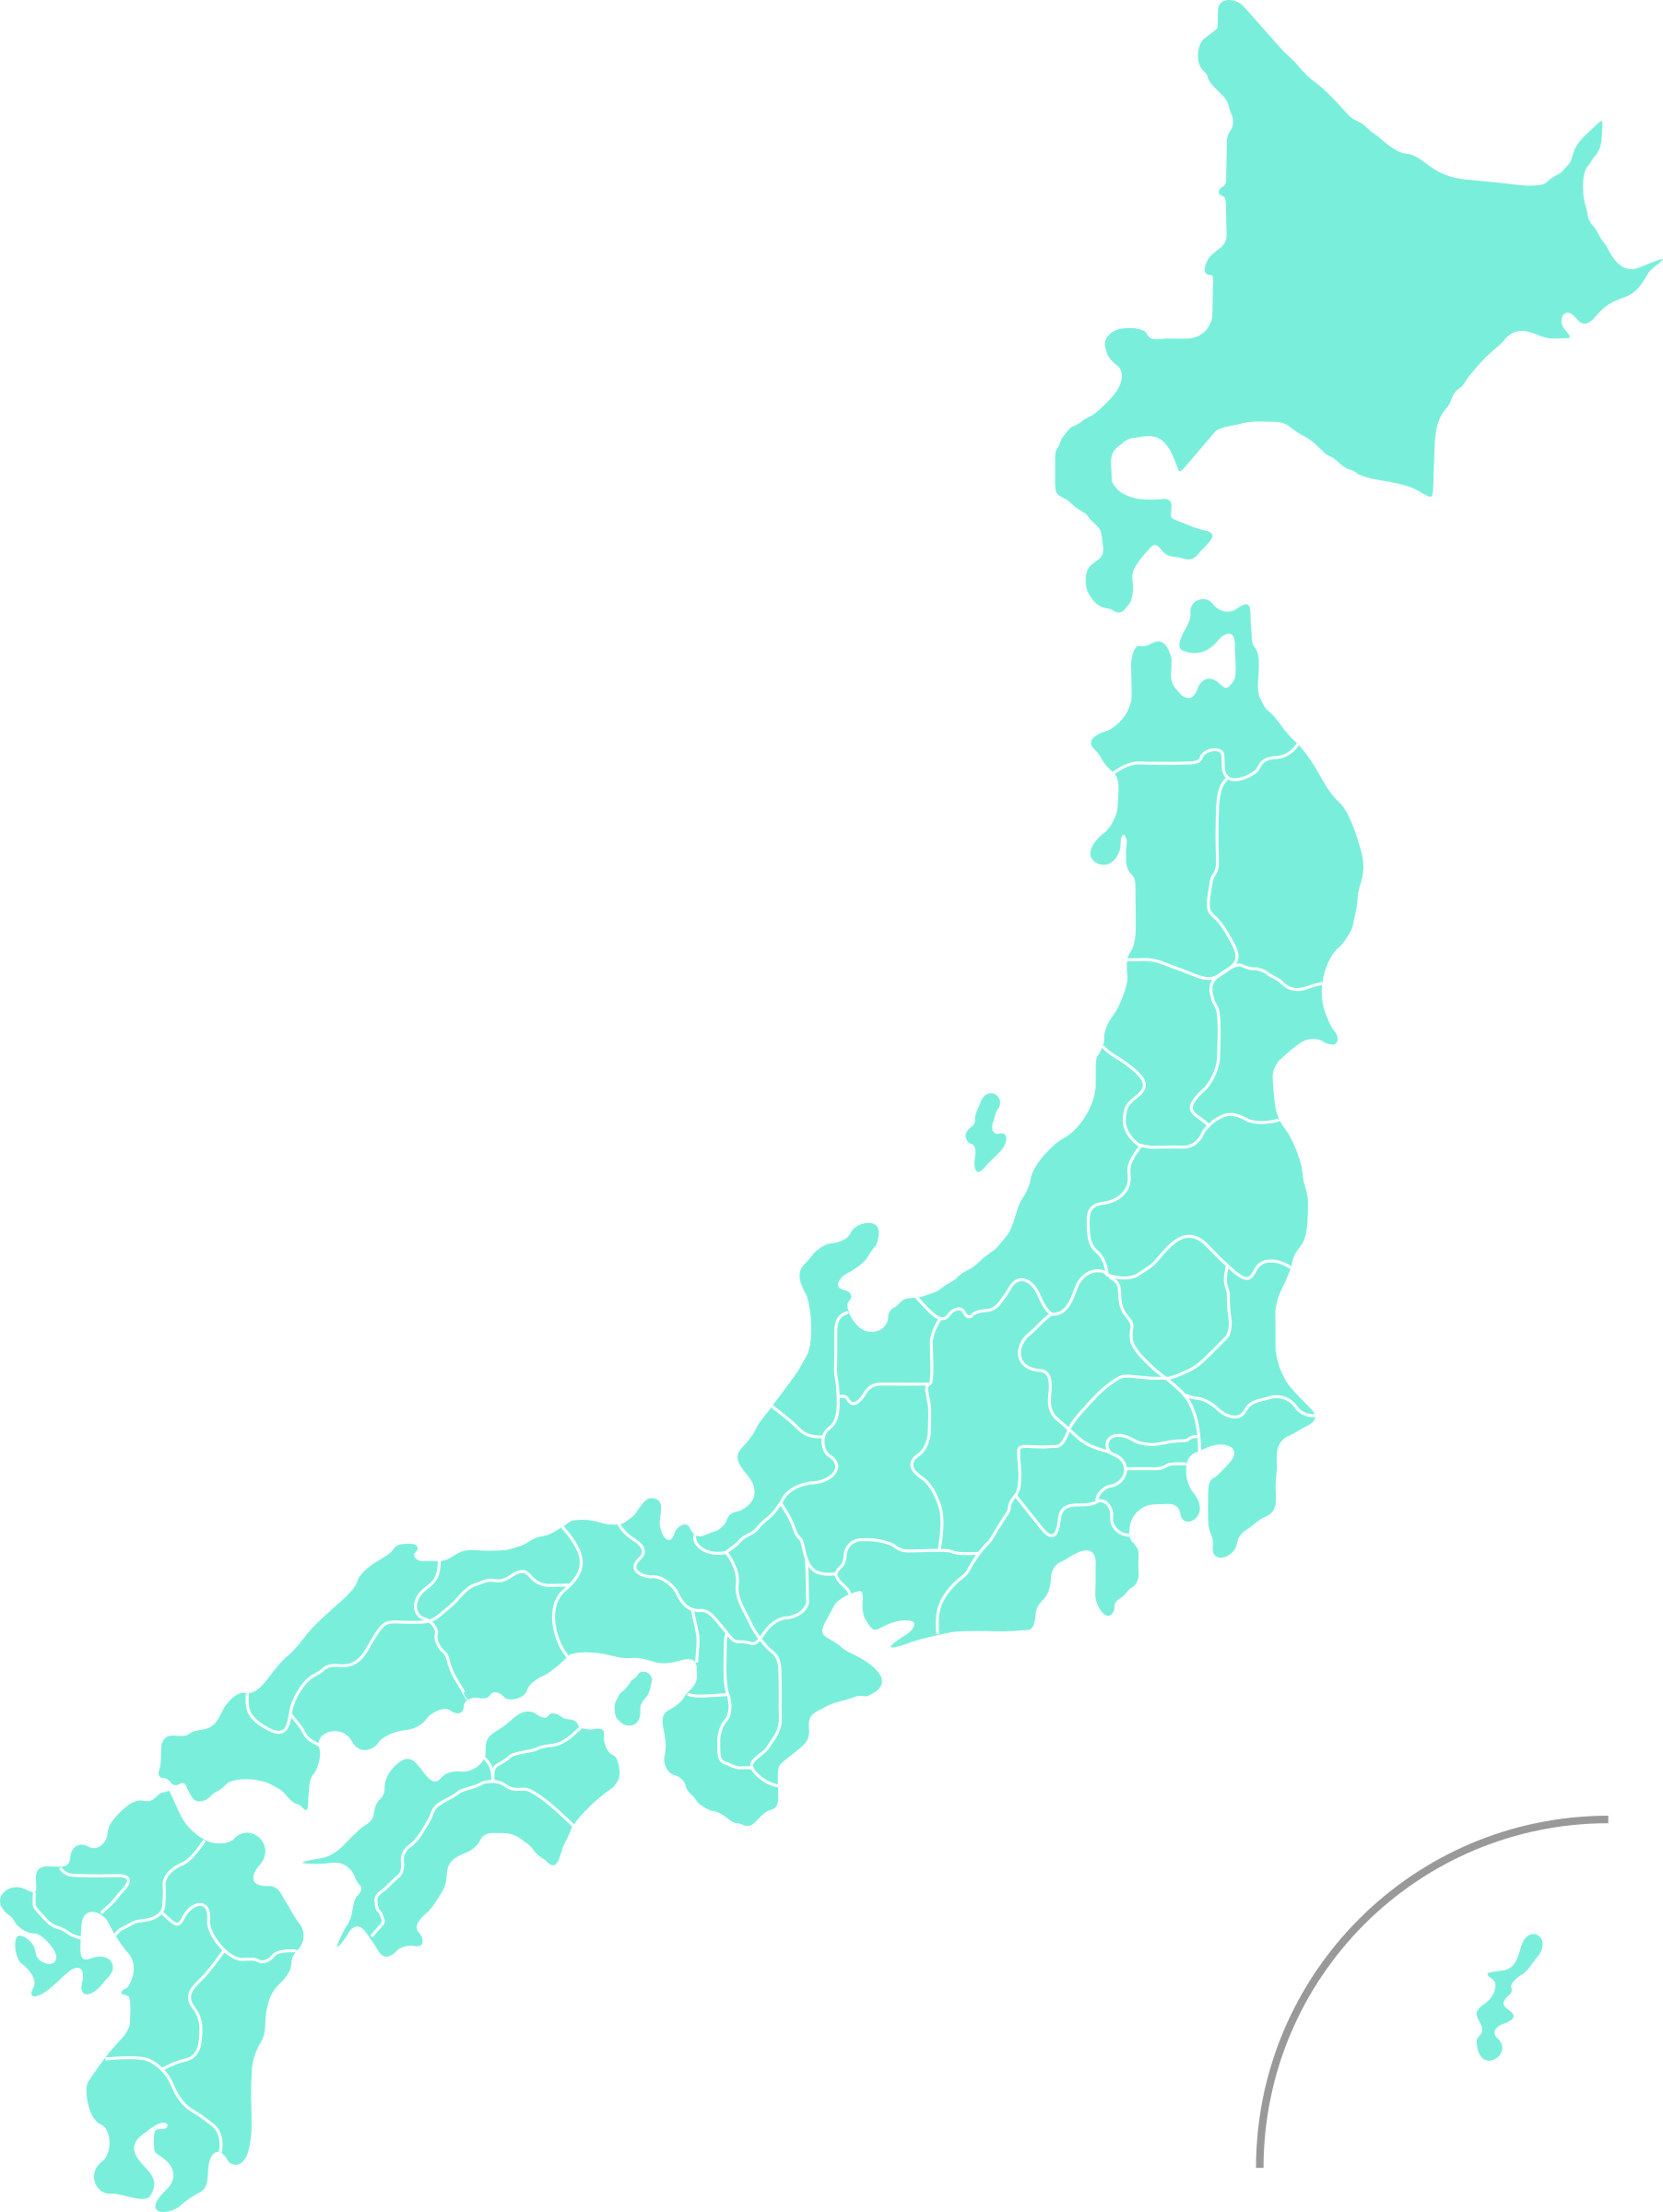 Map of Japan by tagawa